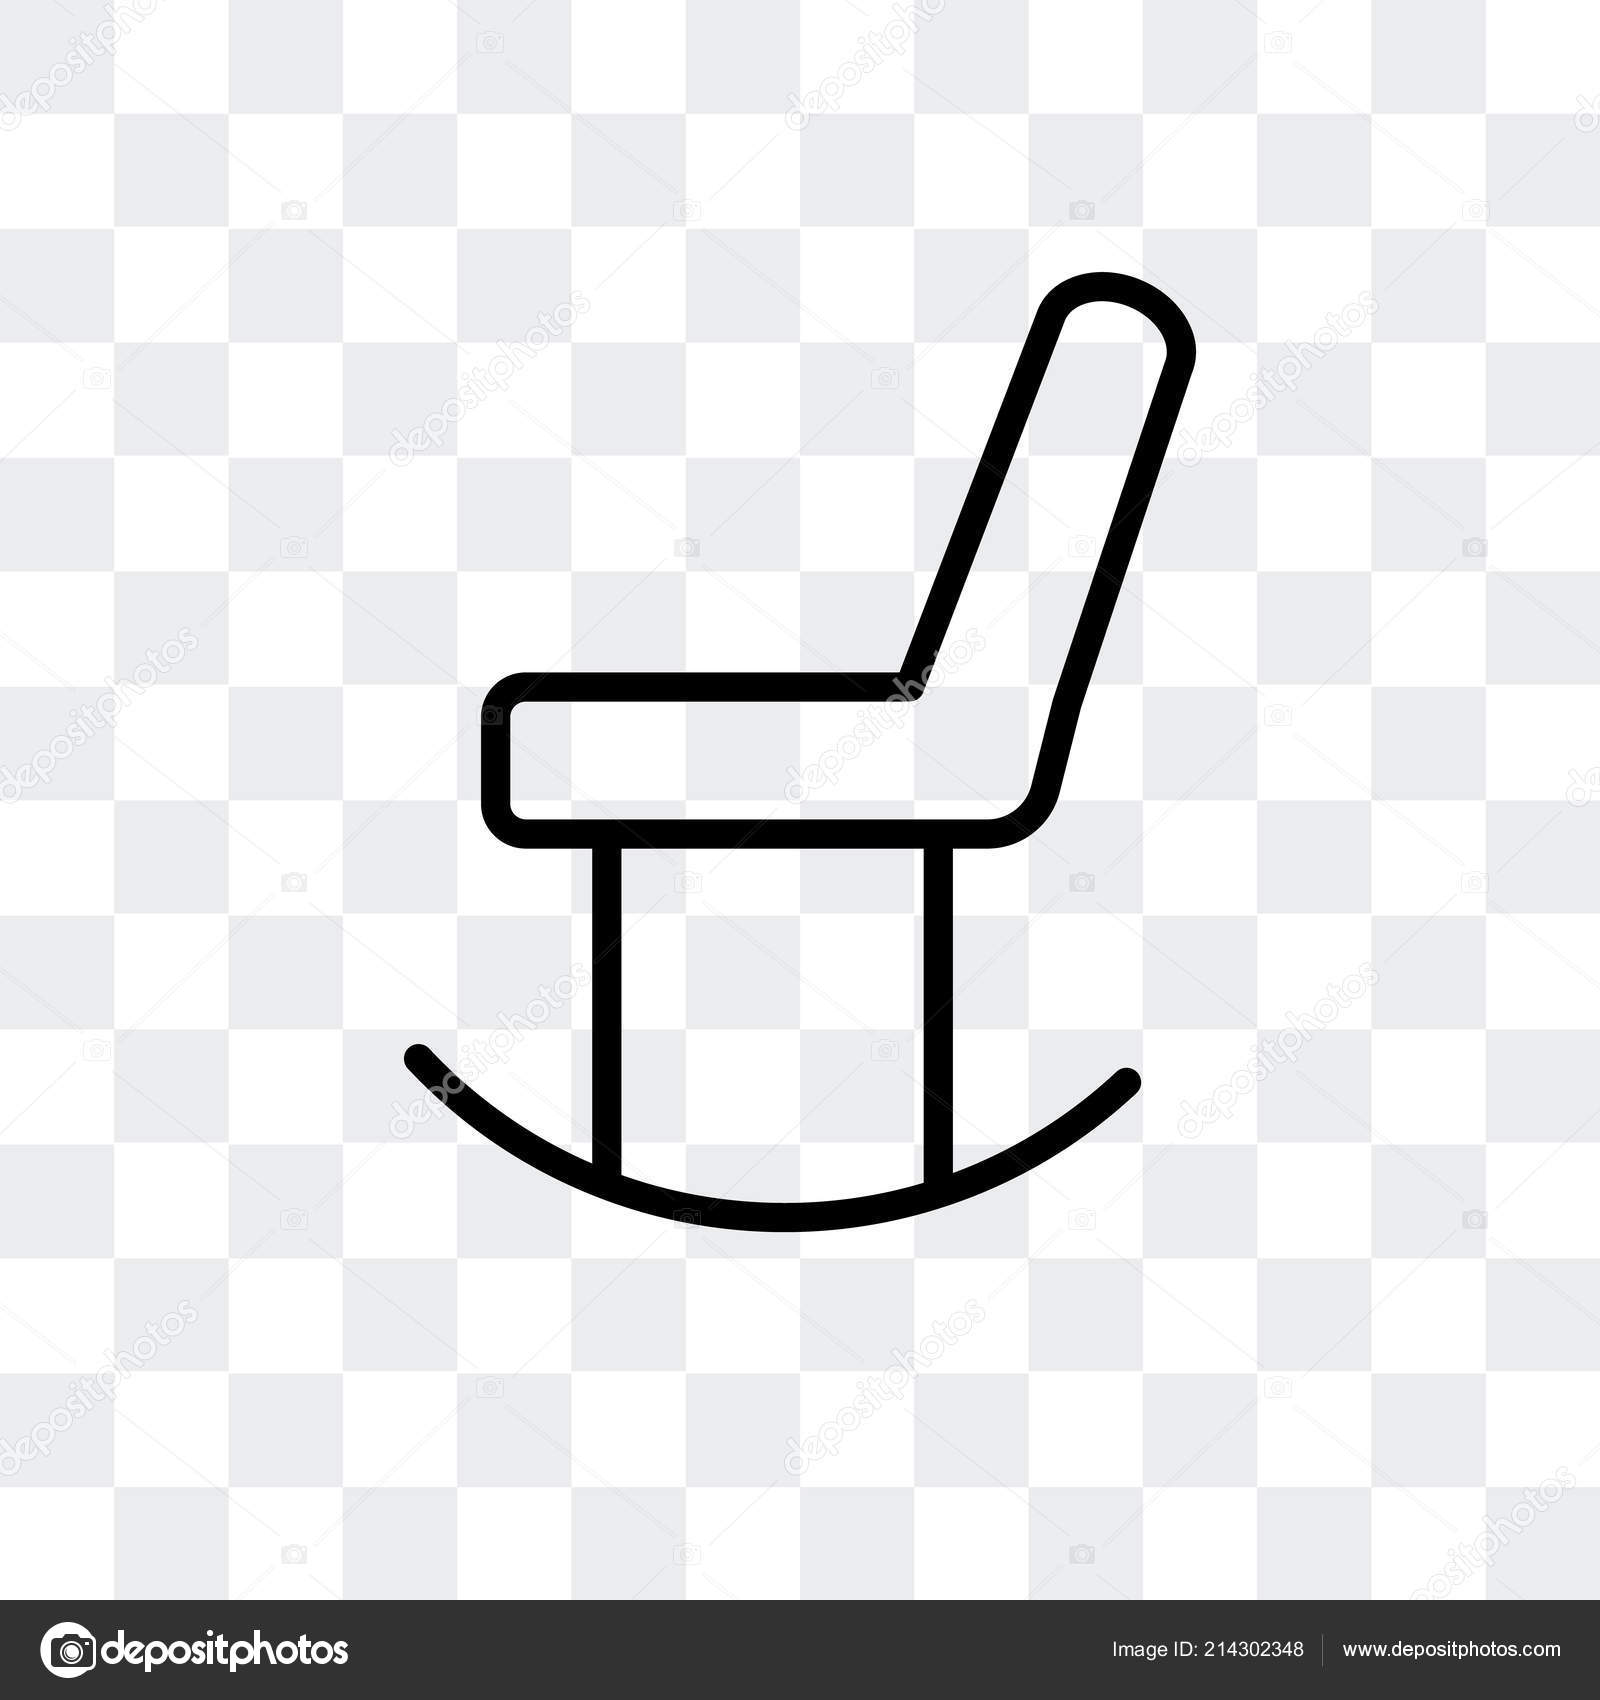 Picture of: Chair Vector Icon Isolated On Transparent Background Chair Logo Design Stock Vector C Bestvectorstock 214302348